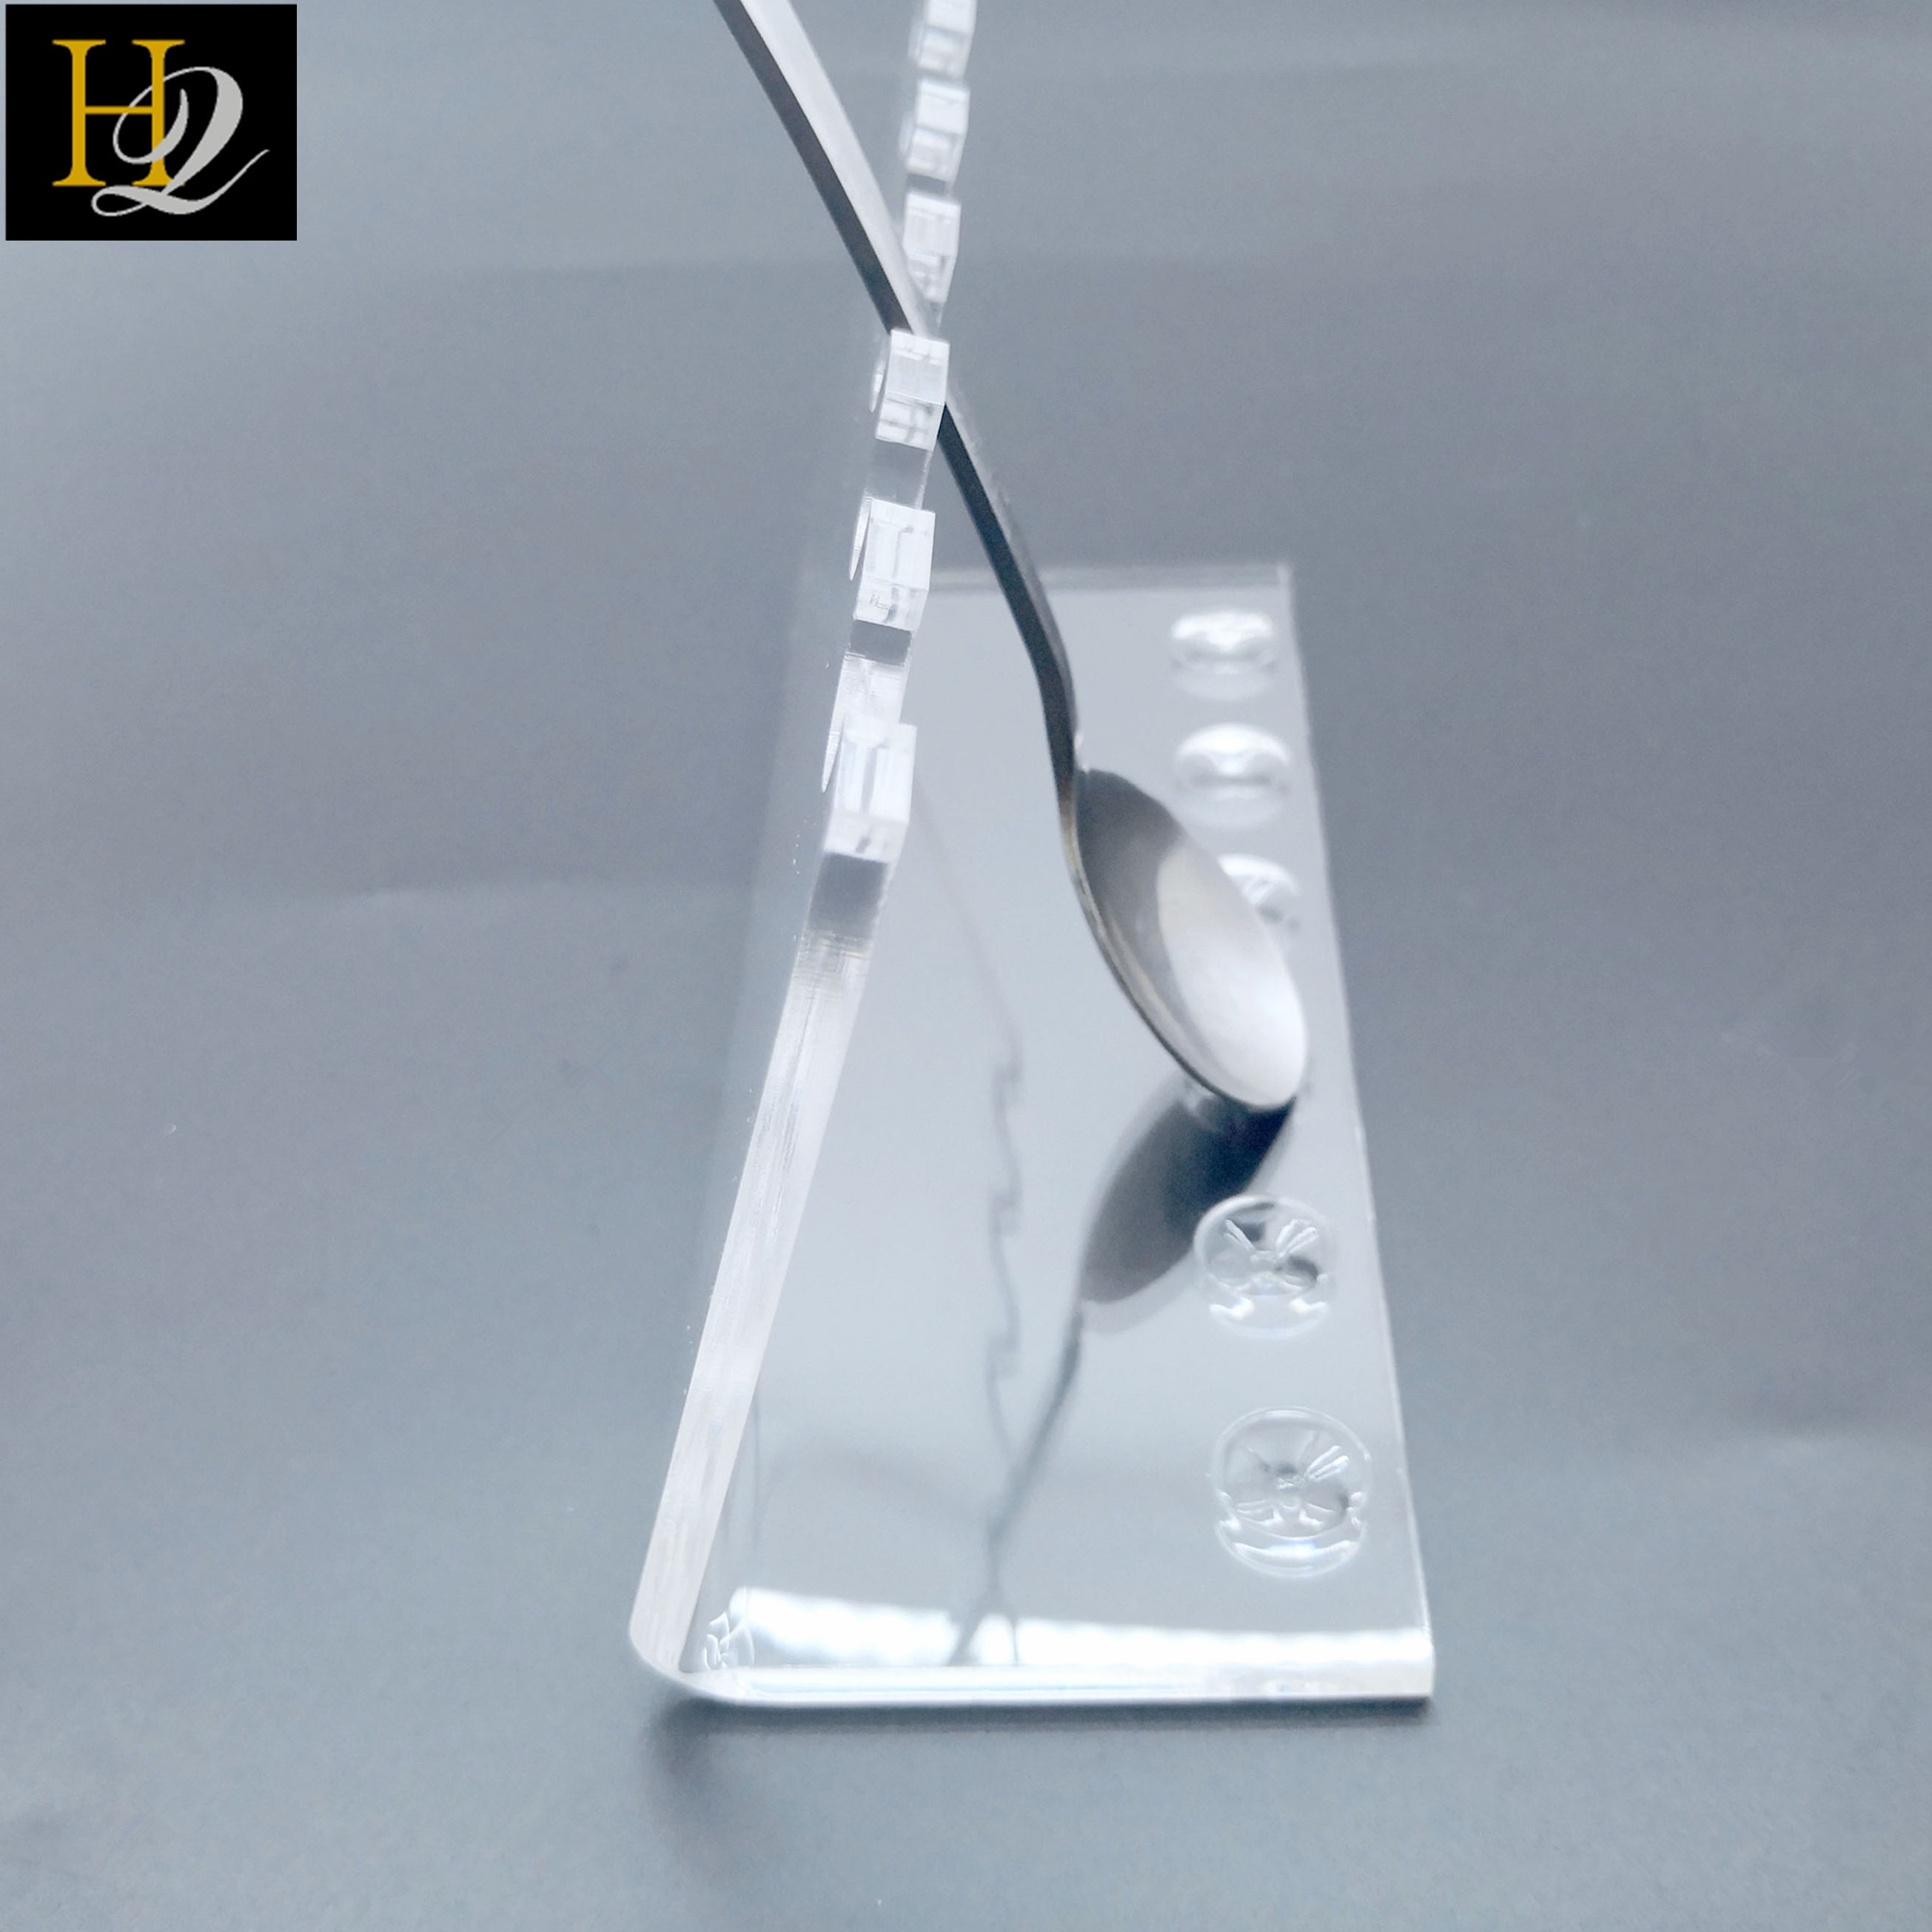 Acrylic Pen Demitasse Spoon Display Stand